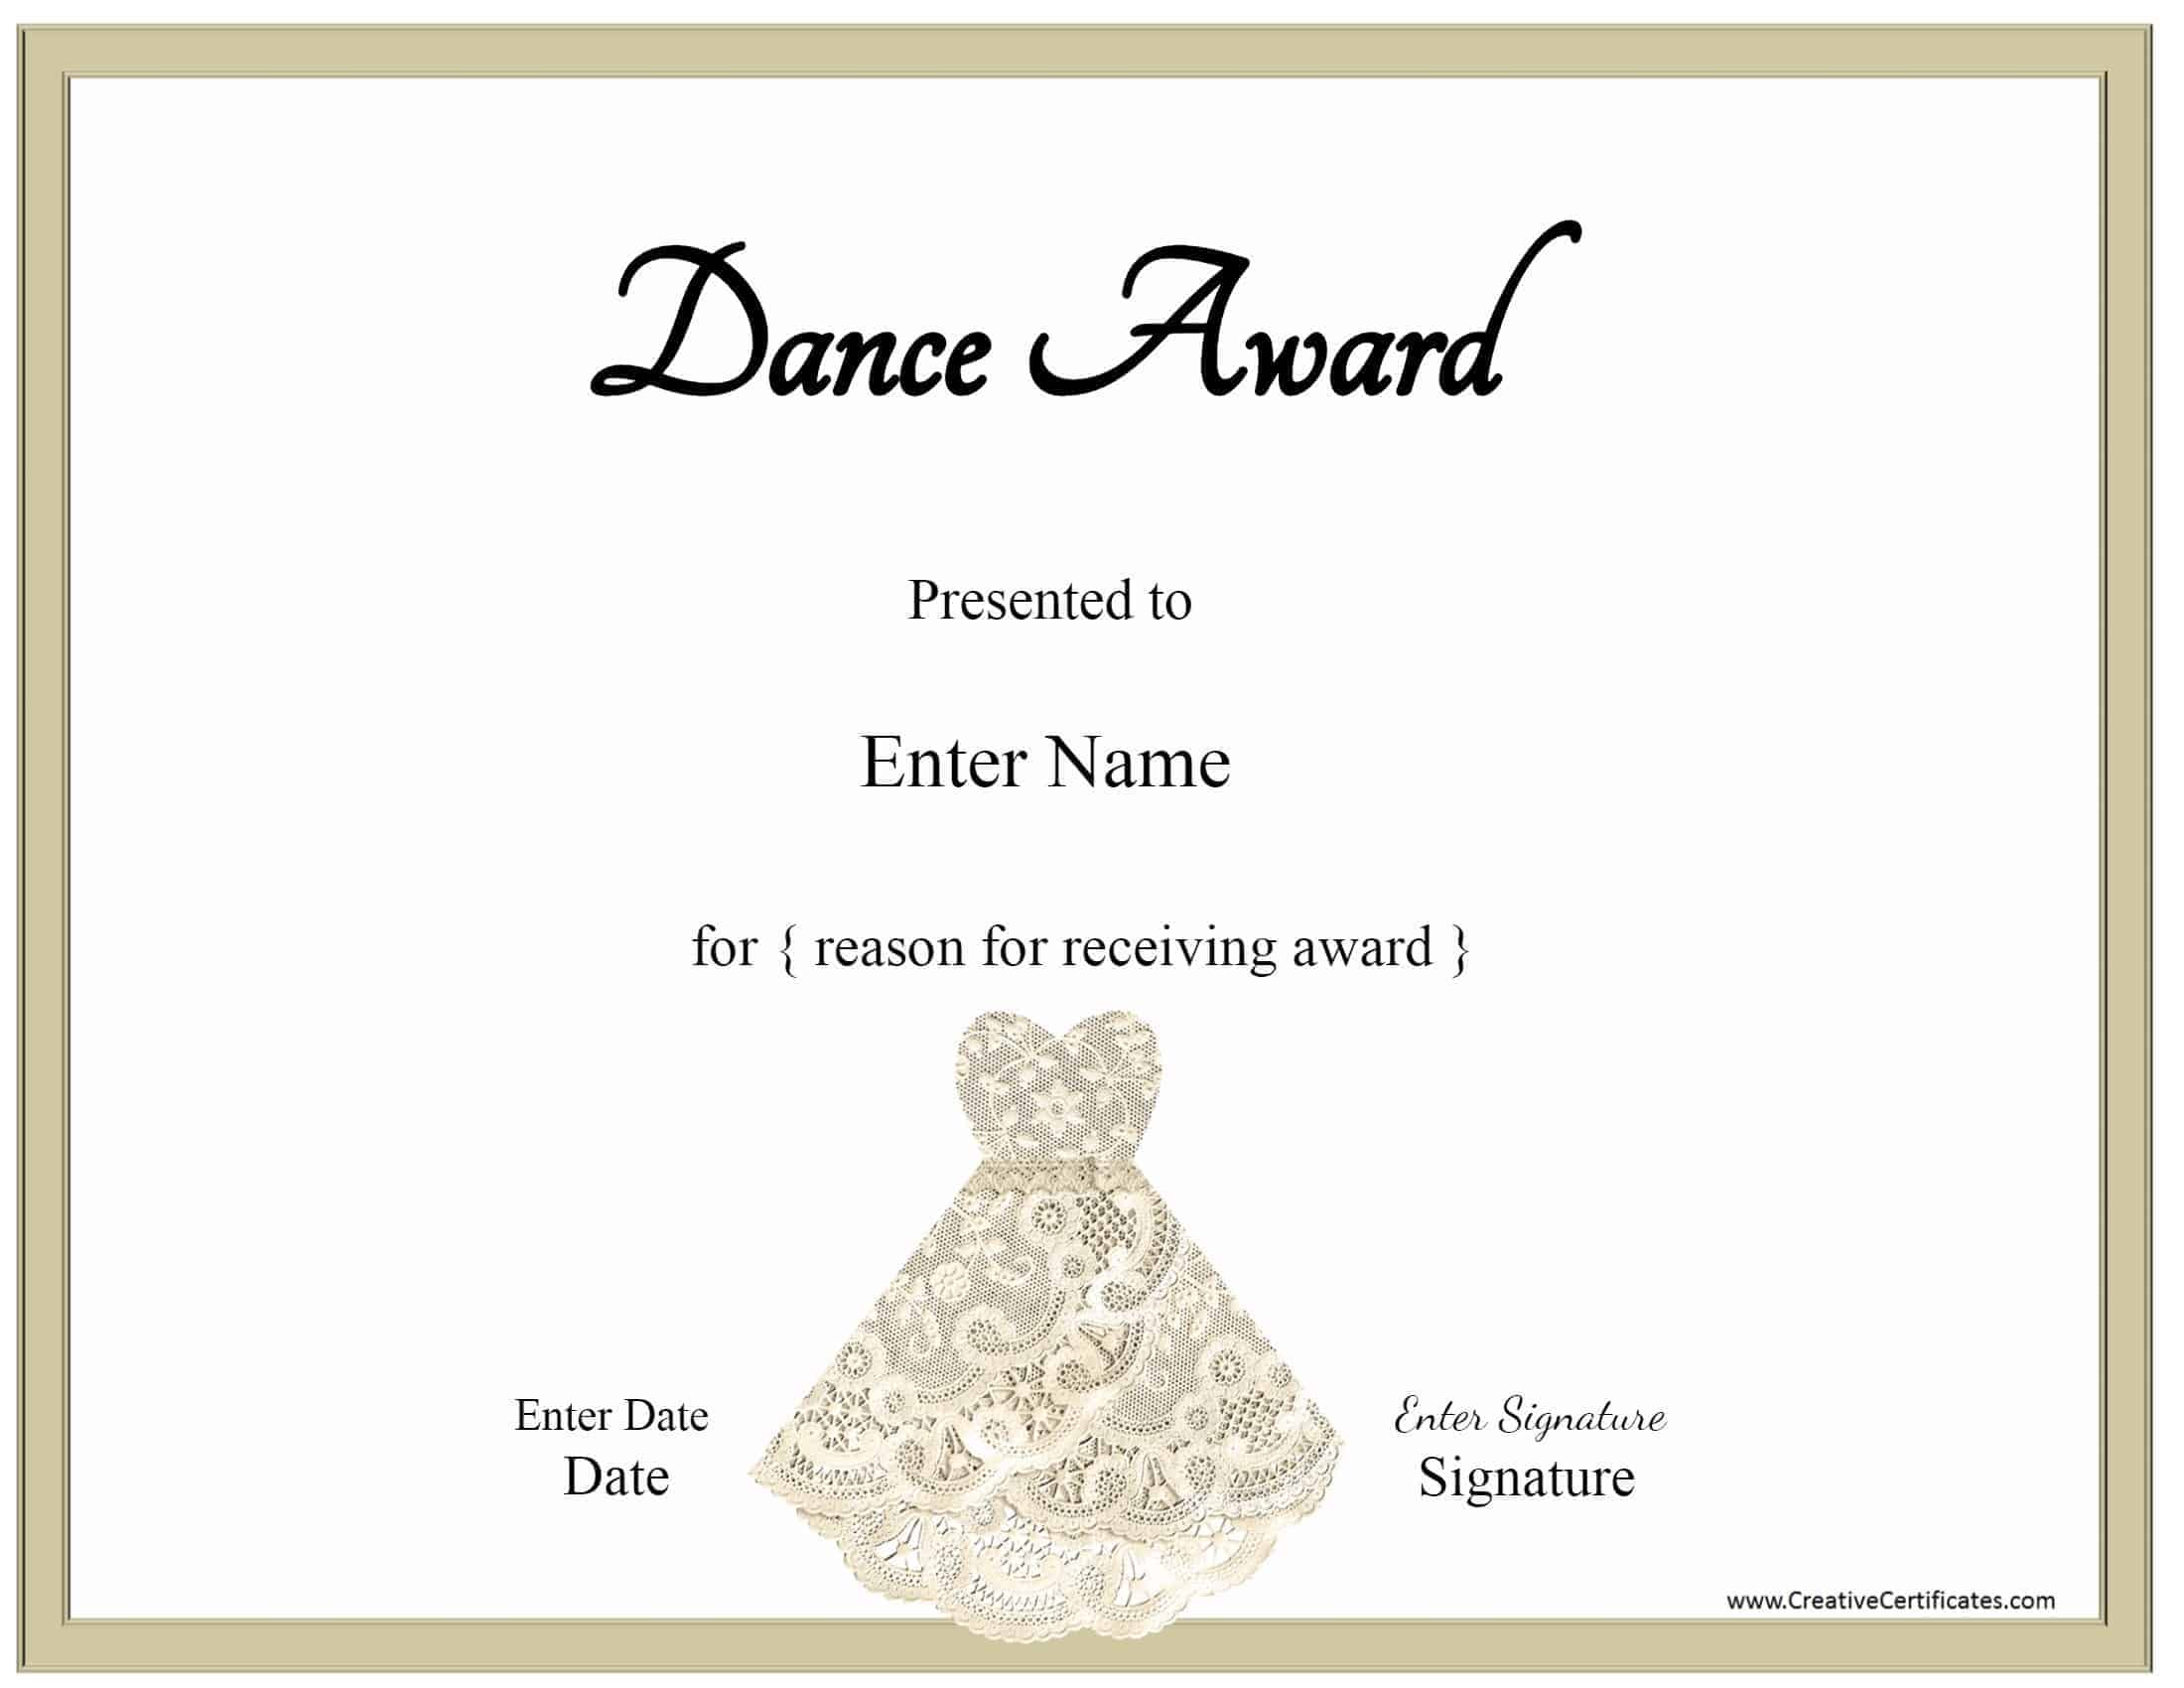 Free dance certificate template customizable and printable ballet certificate with a picture of a lace dress yelopaper Choice Image